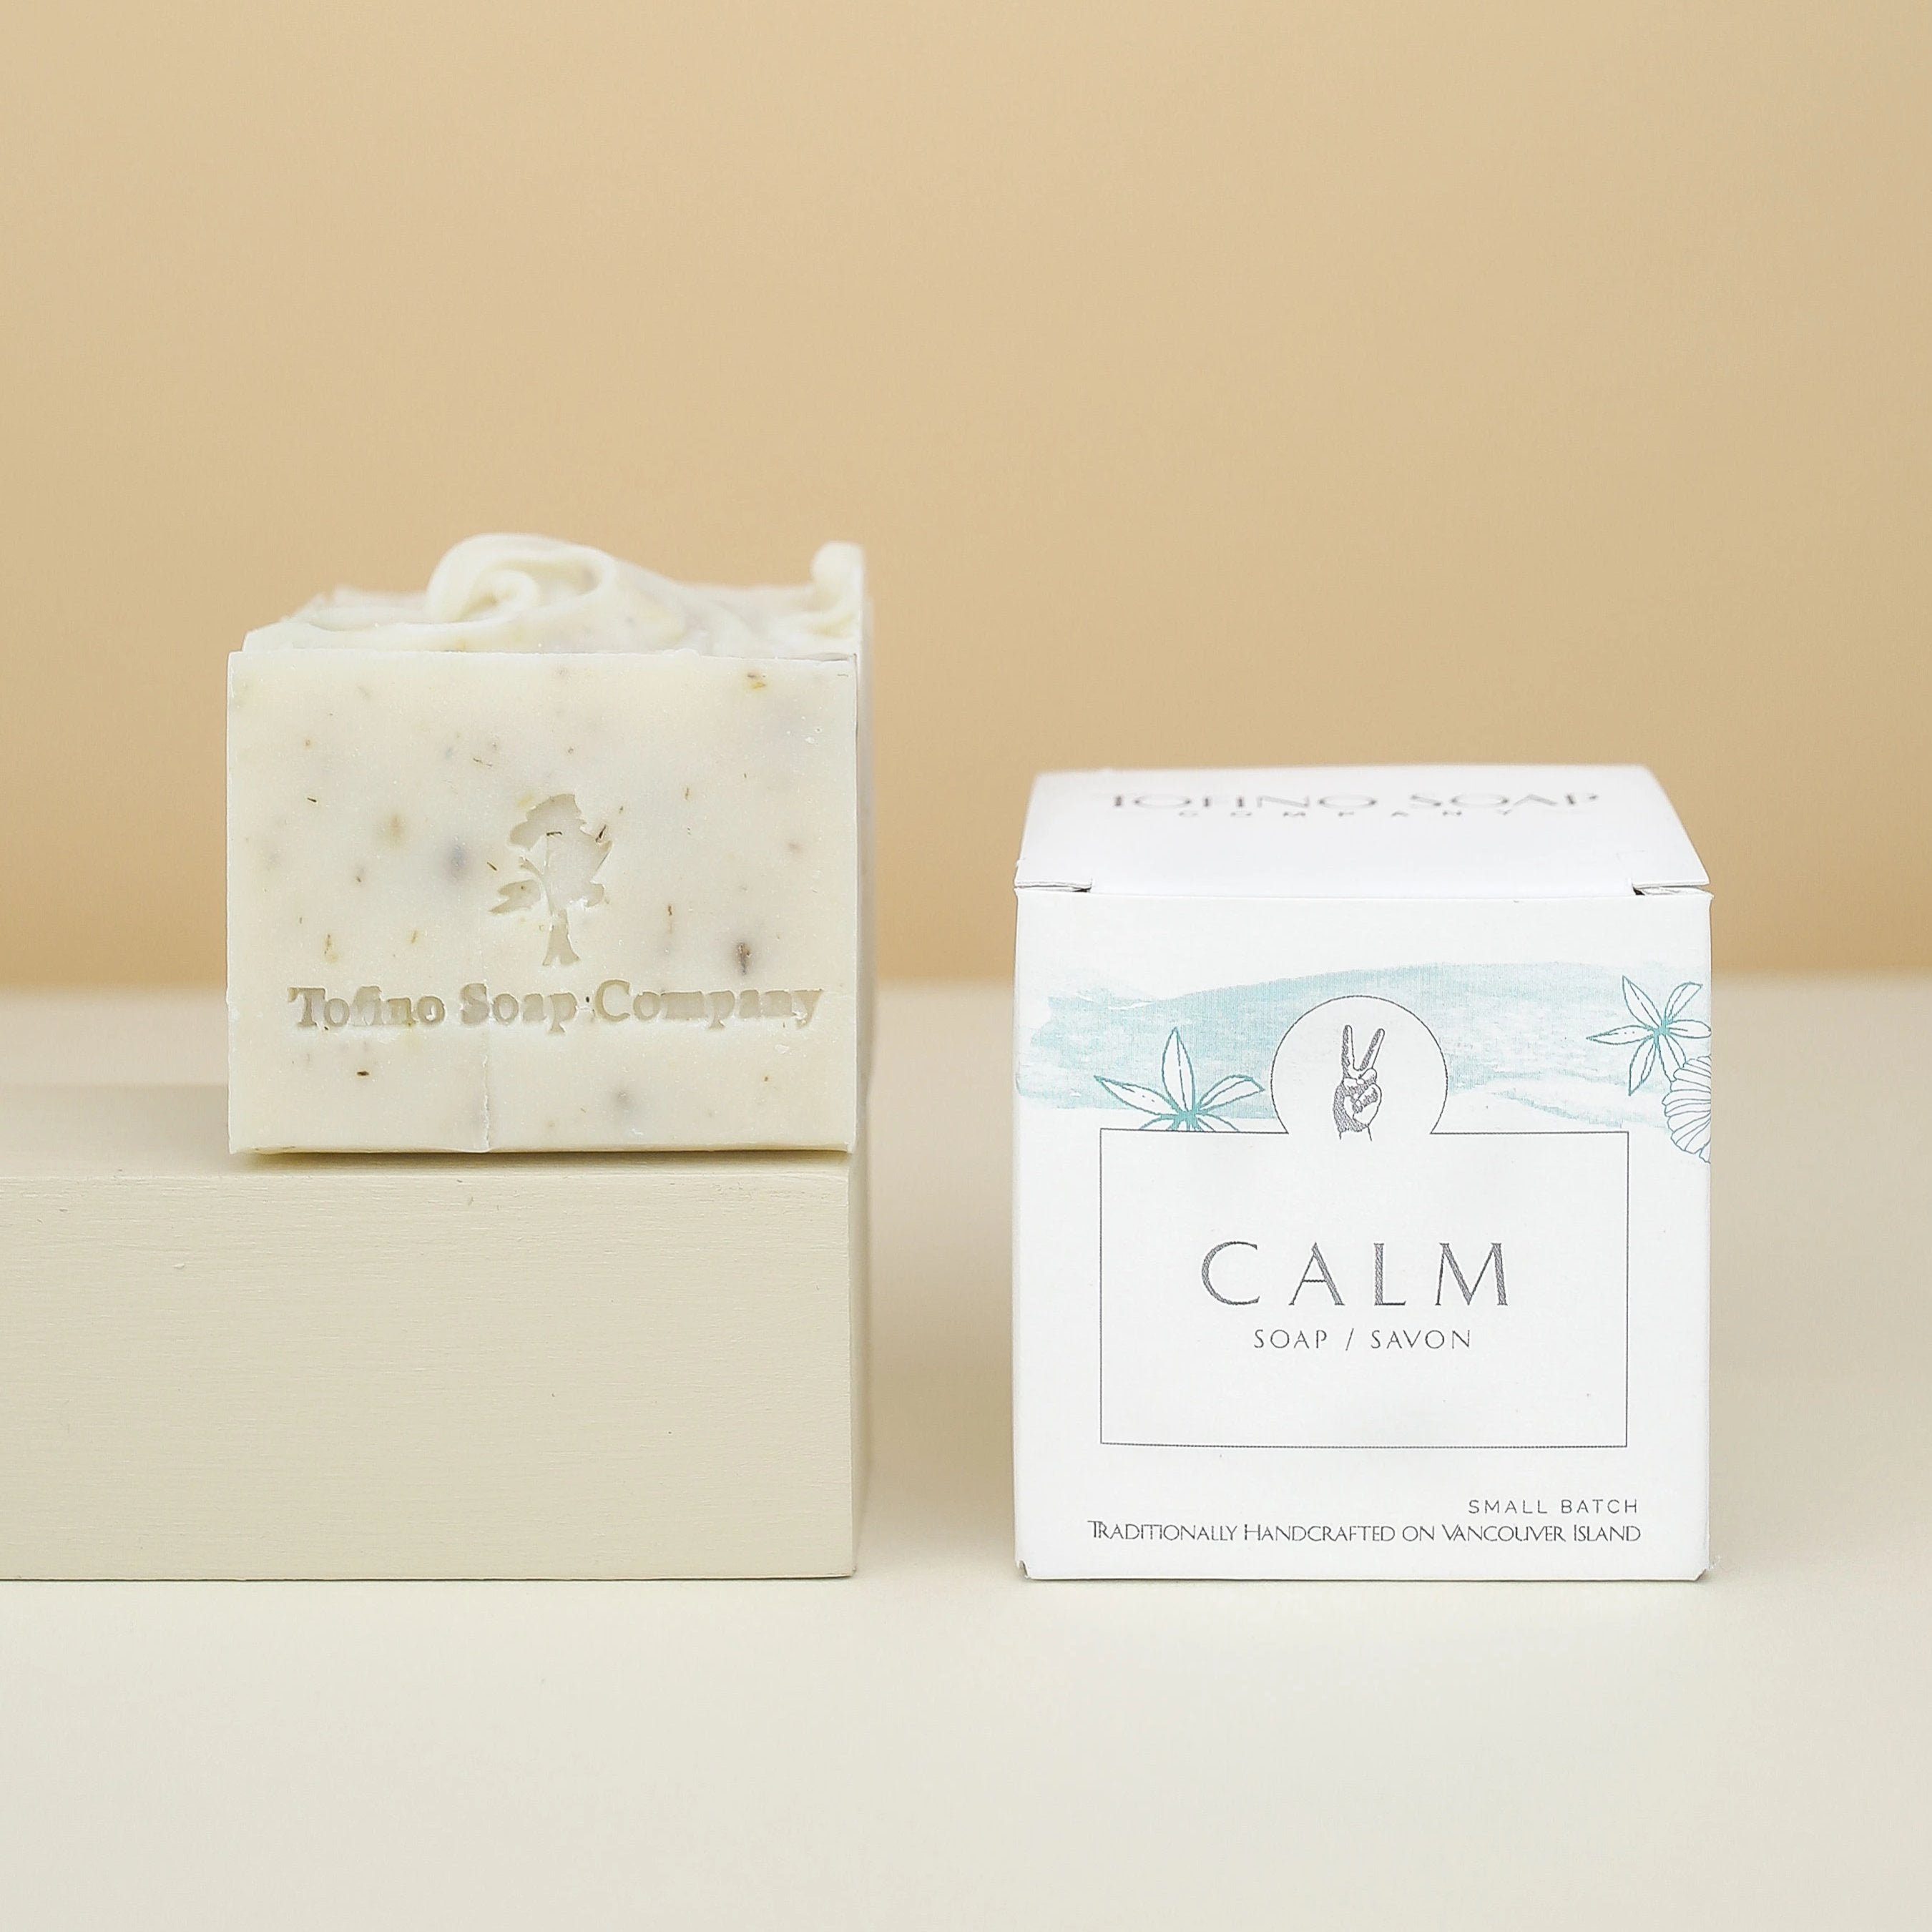 Tofino Soap | Calm - Tofino Soap Company ®